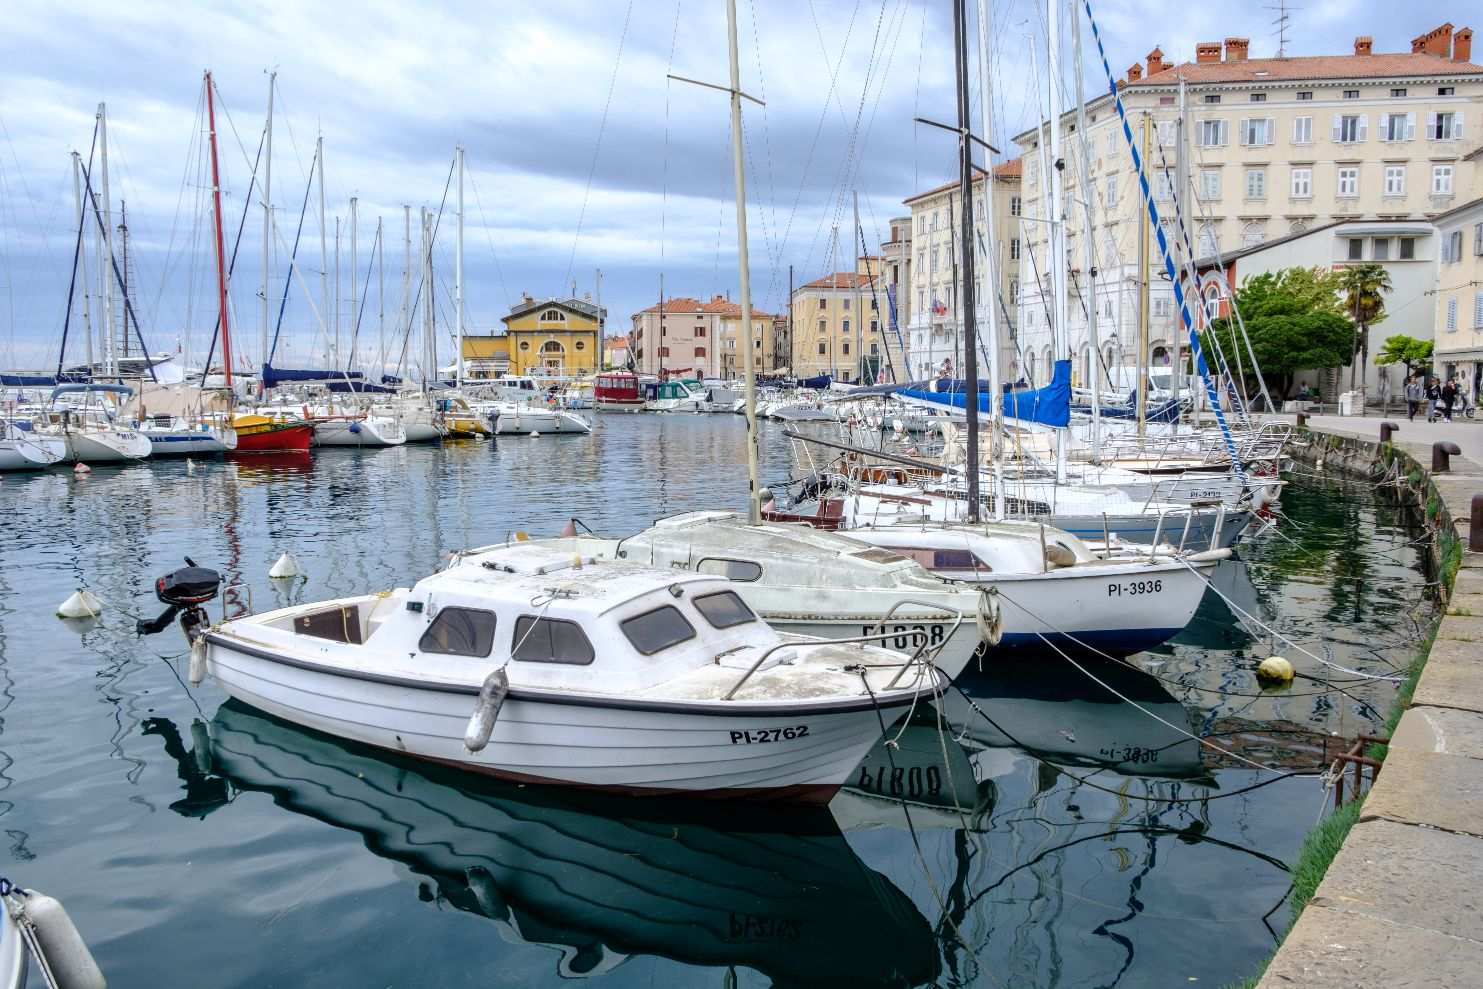 Piran marina. Author: Neale Bertram